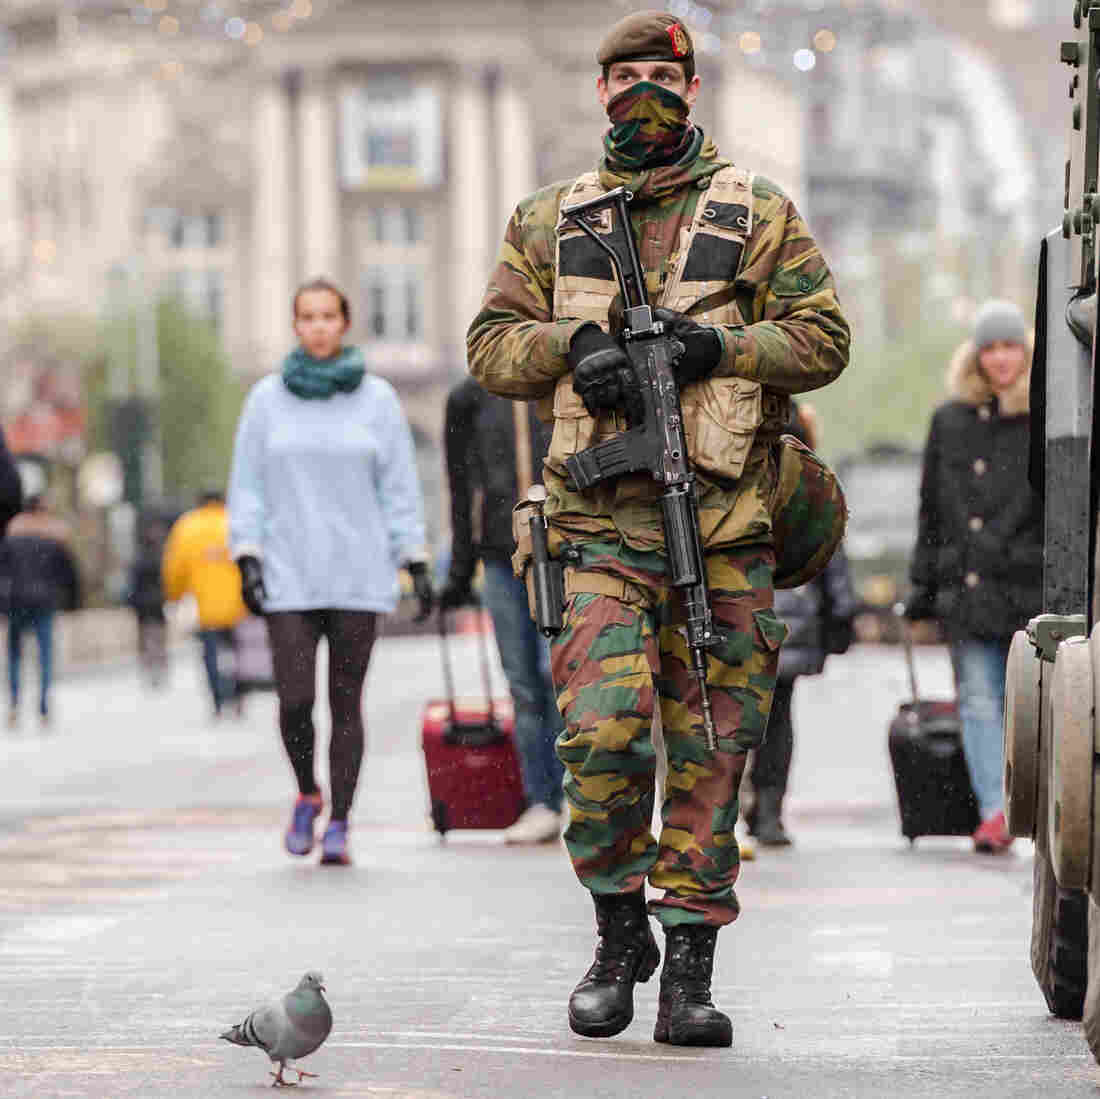 Brussels Remains On High Alert; Schools And Universities To Reopen This Week